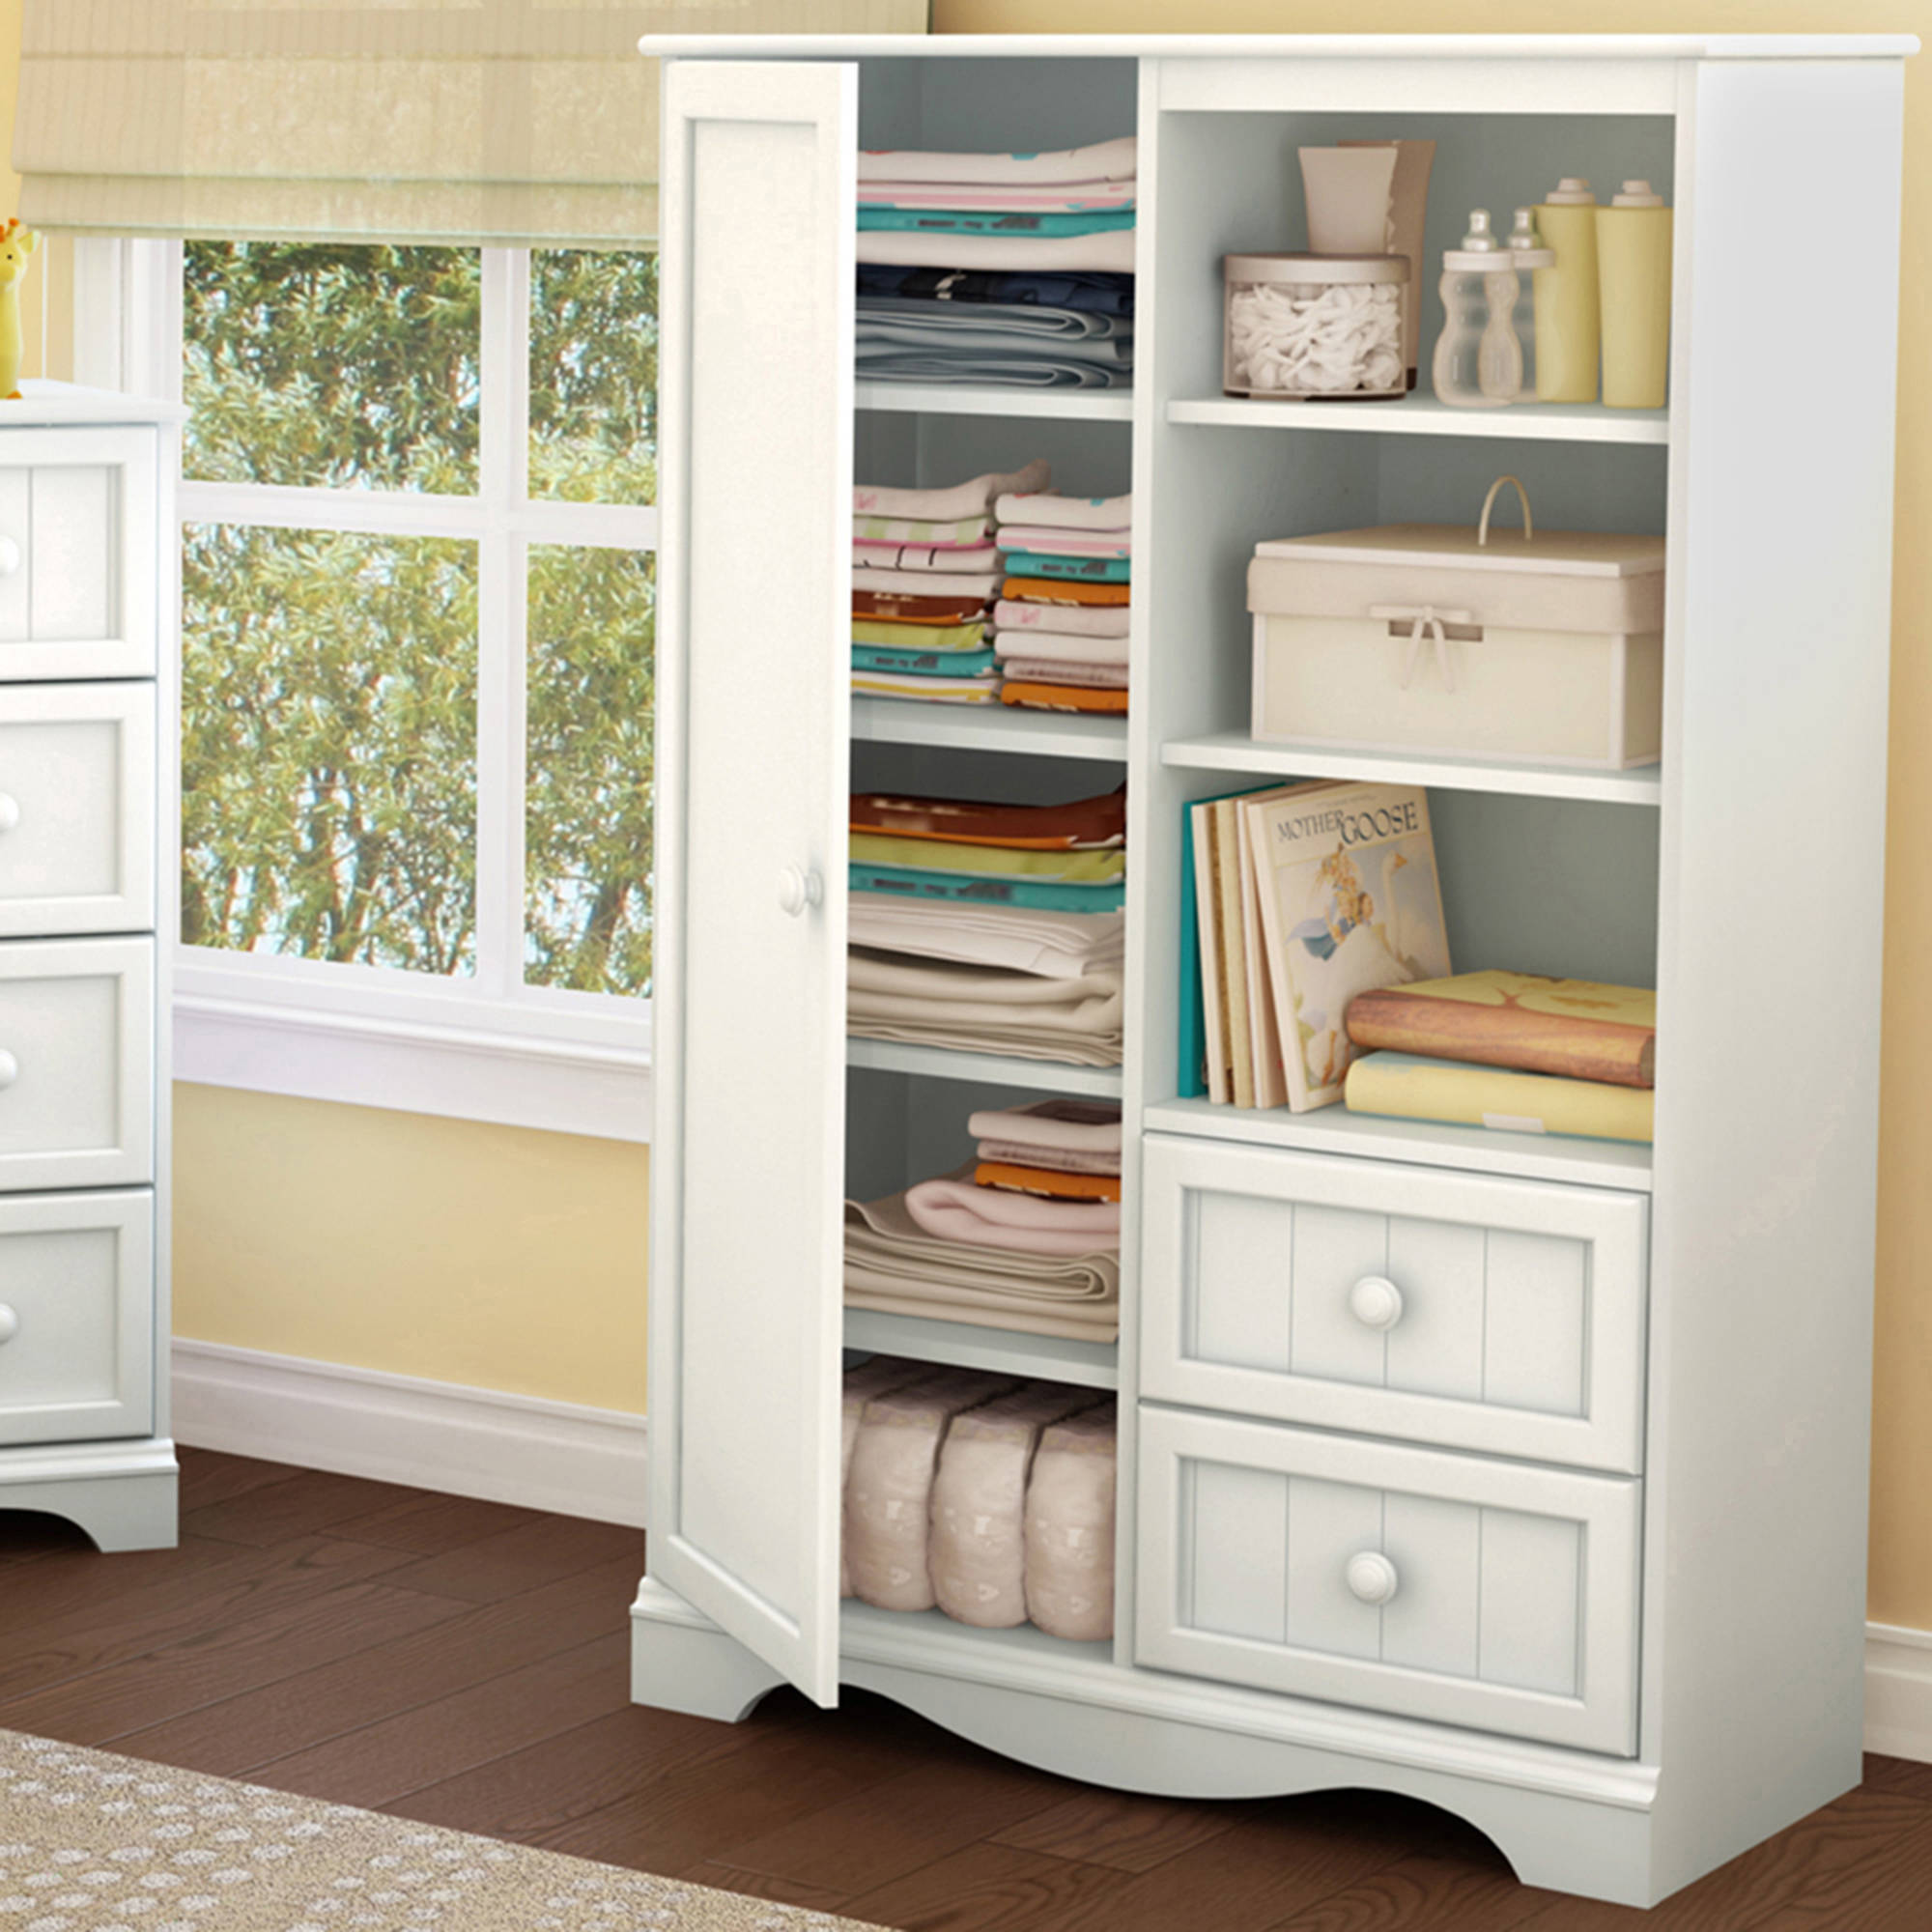 South Shore Savannah Armoire with Drawers, Multiple Finishes